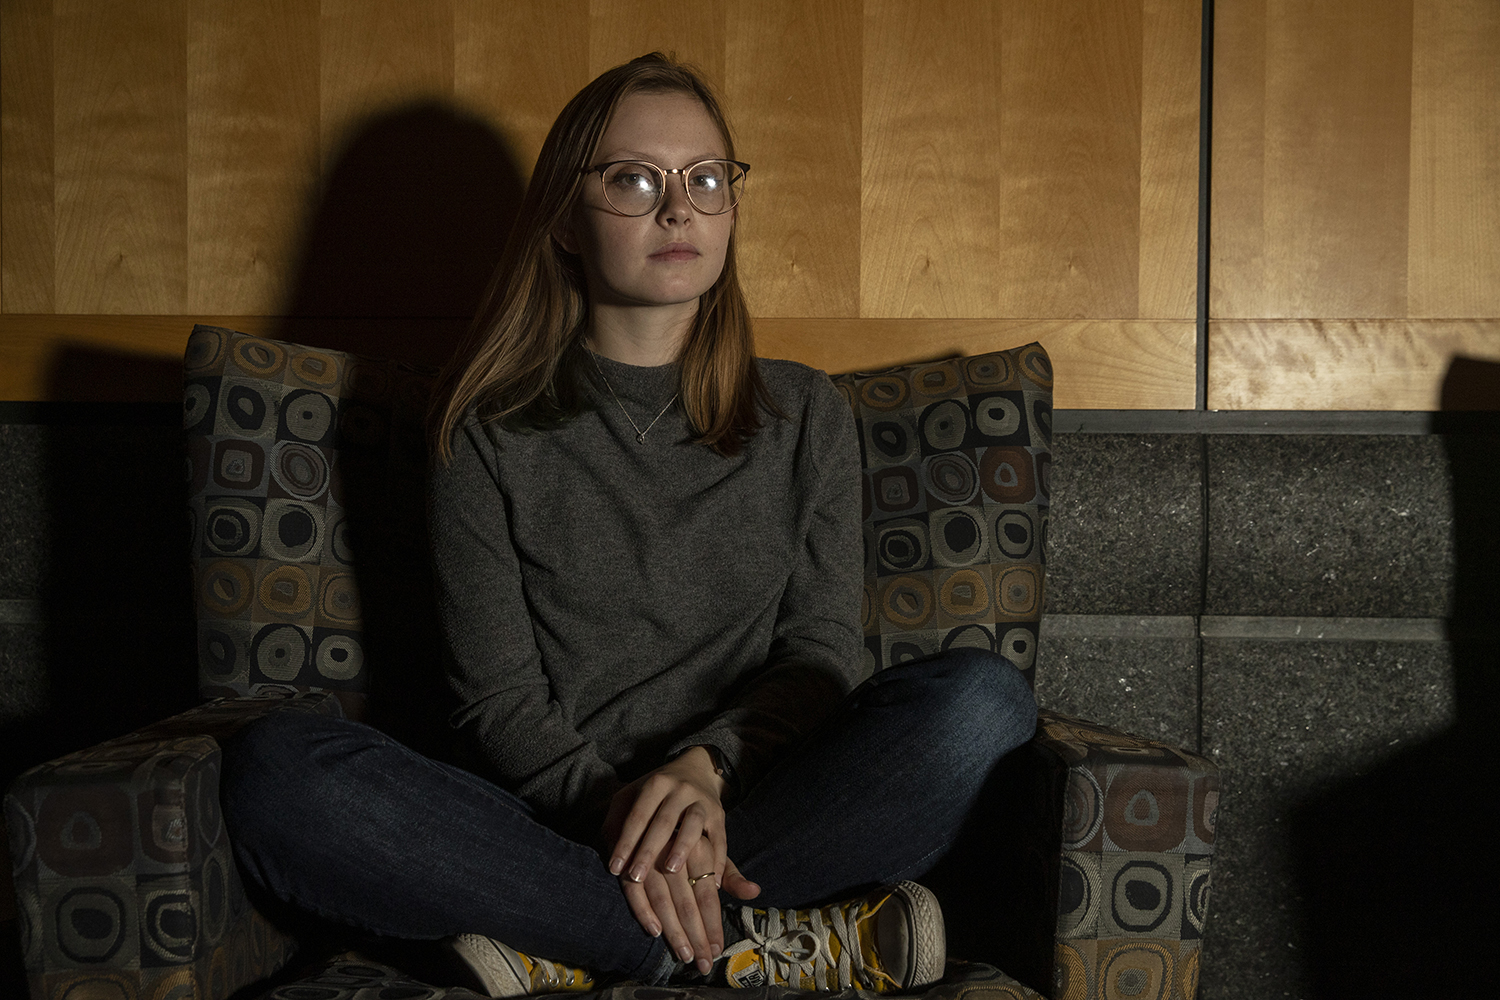 Madison Lotenschtein poses for a portrait in the Adler Journalism Building on Wednesday.